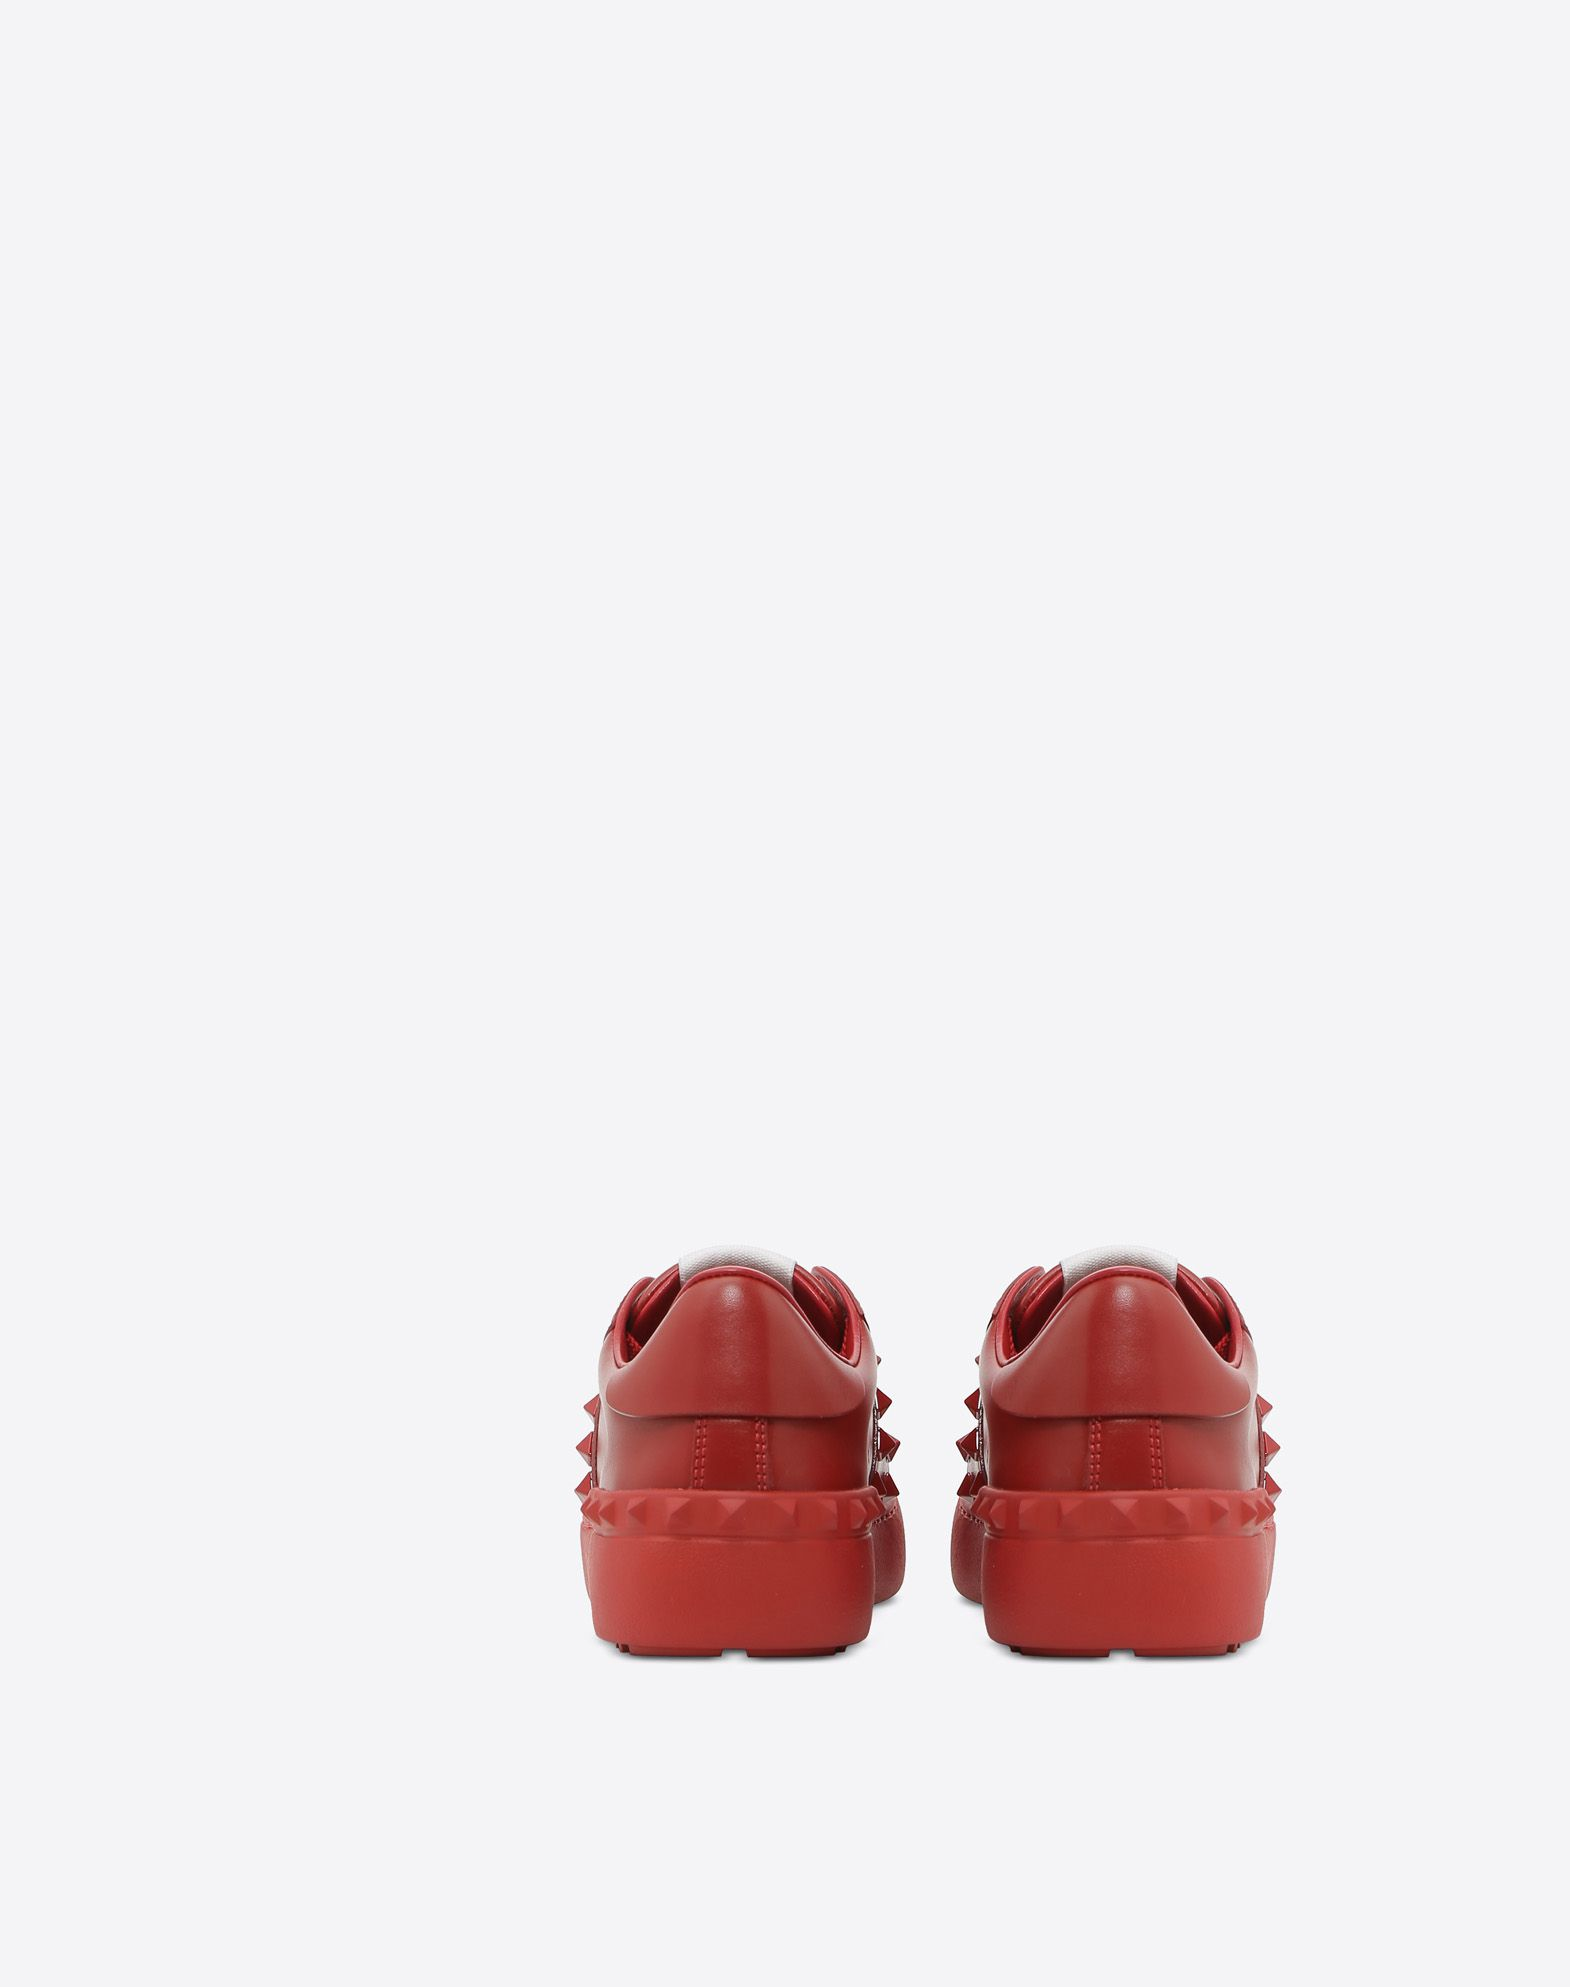 VALENTINO GARAVANI Rockstud Untitled Rosso Sneaker LOW-TOP SNEAKERS D d